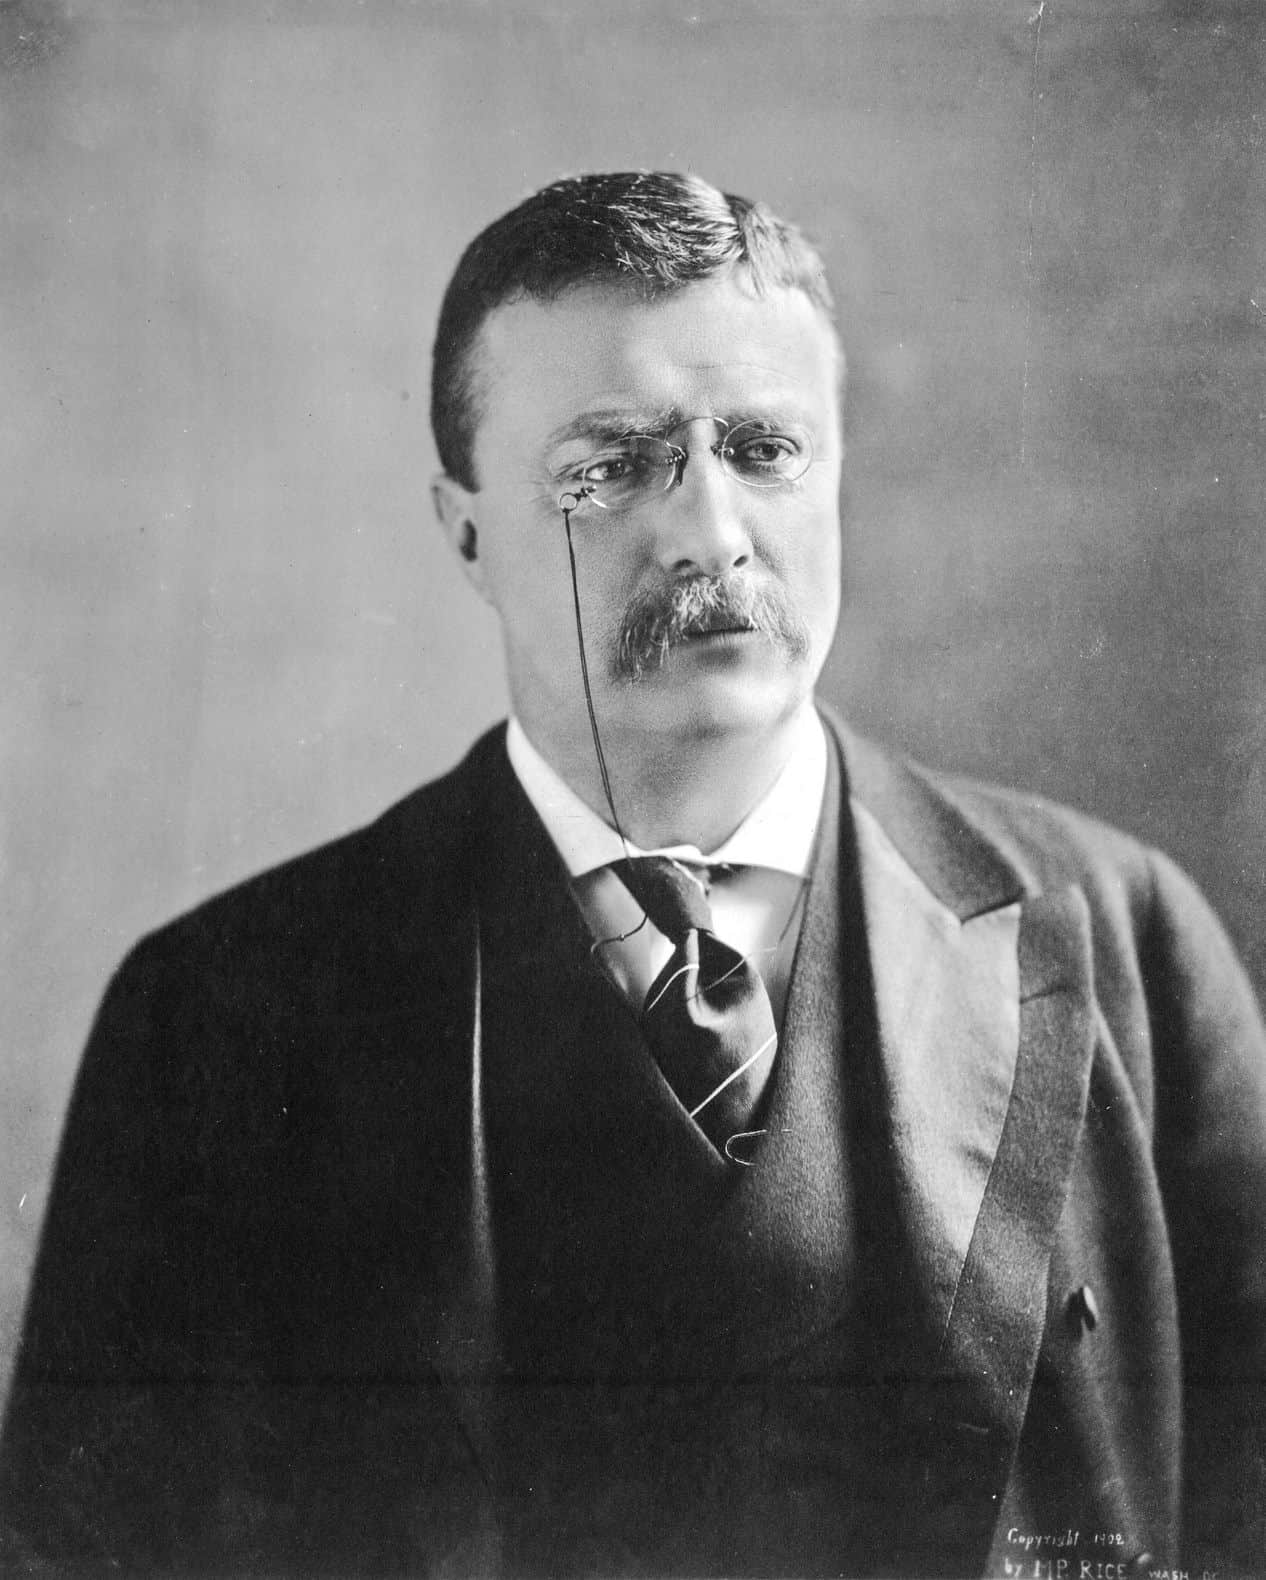 Theodore-Roosevelt-in-frock-coat-with-striped-necktie-and-turndown-collar-at-Oath-of-Office-September-14-1901.jpg (1266×1580)